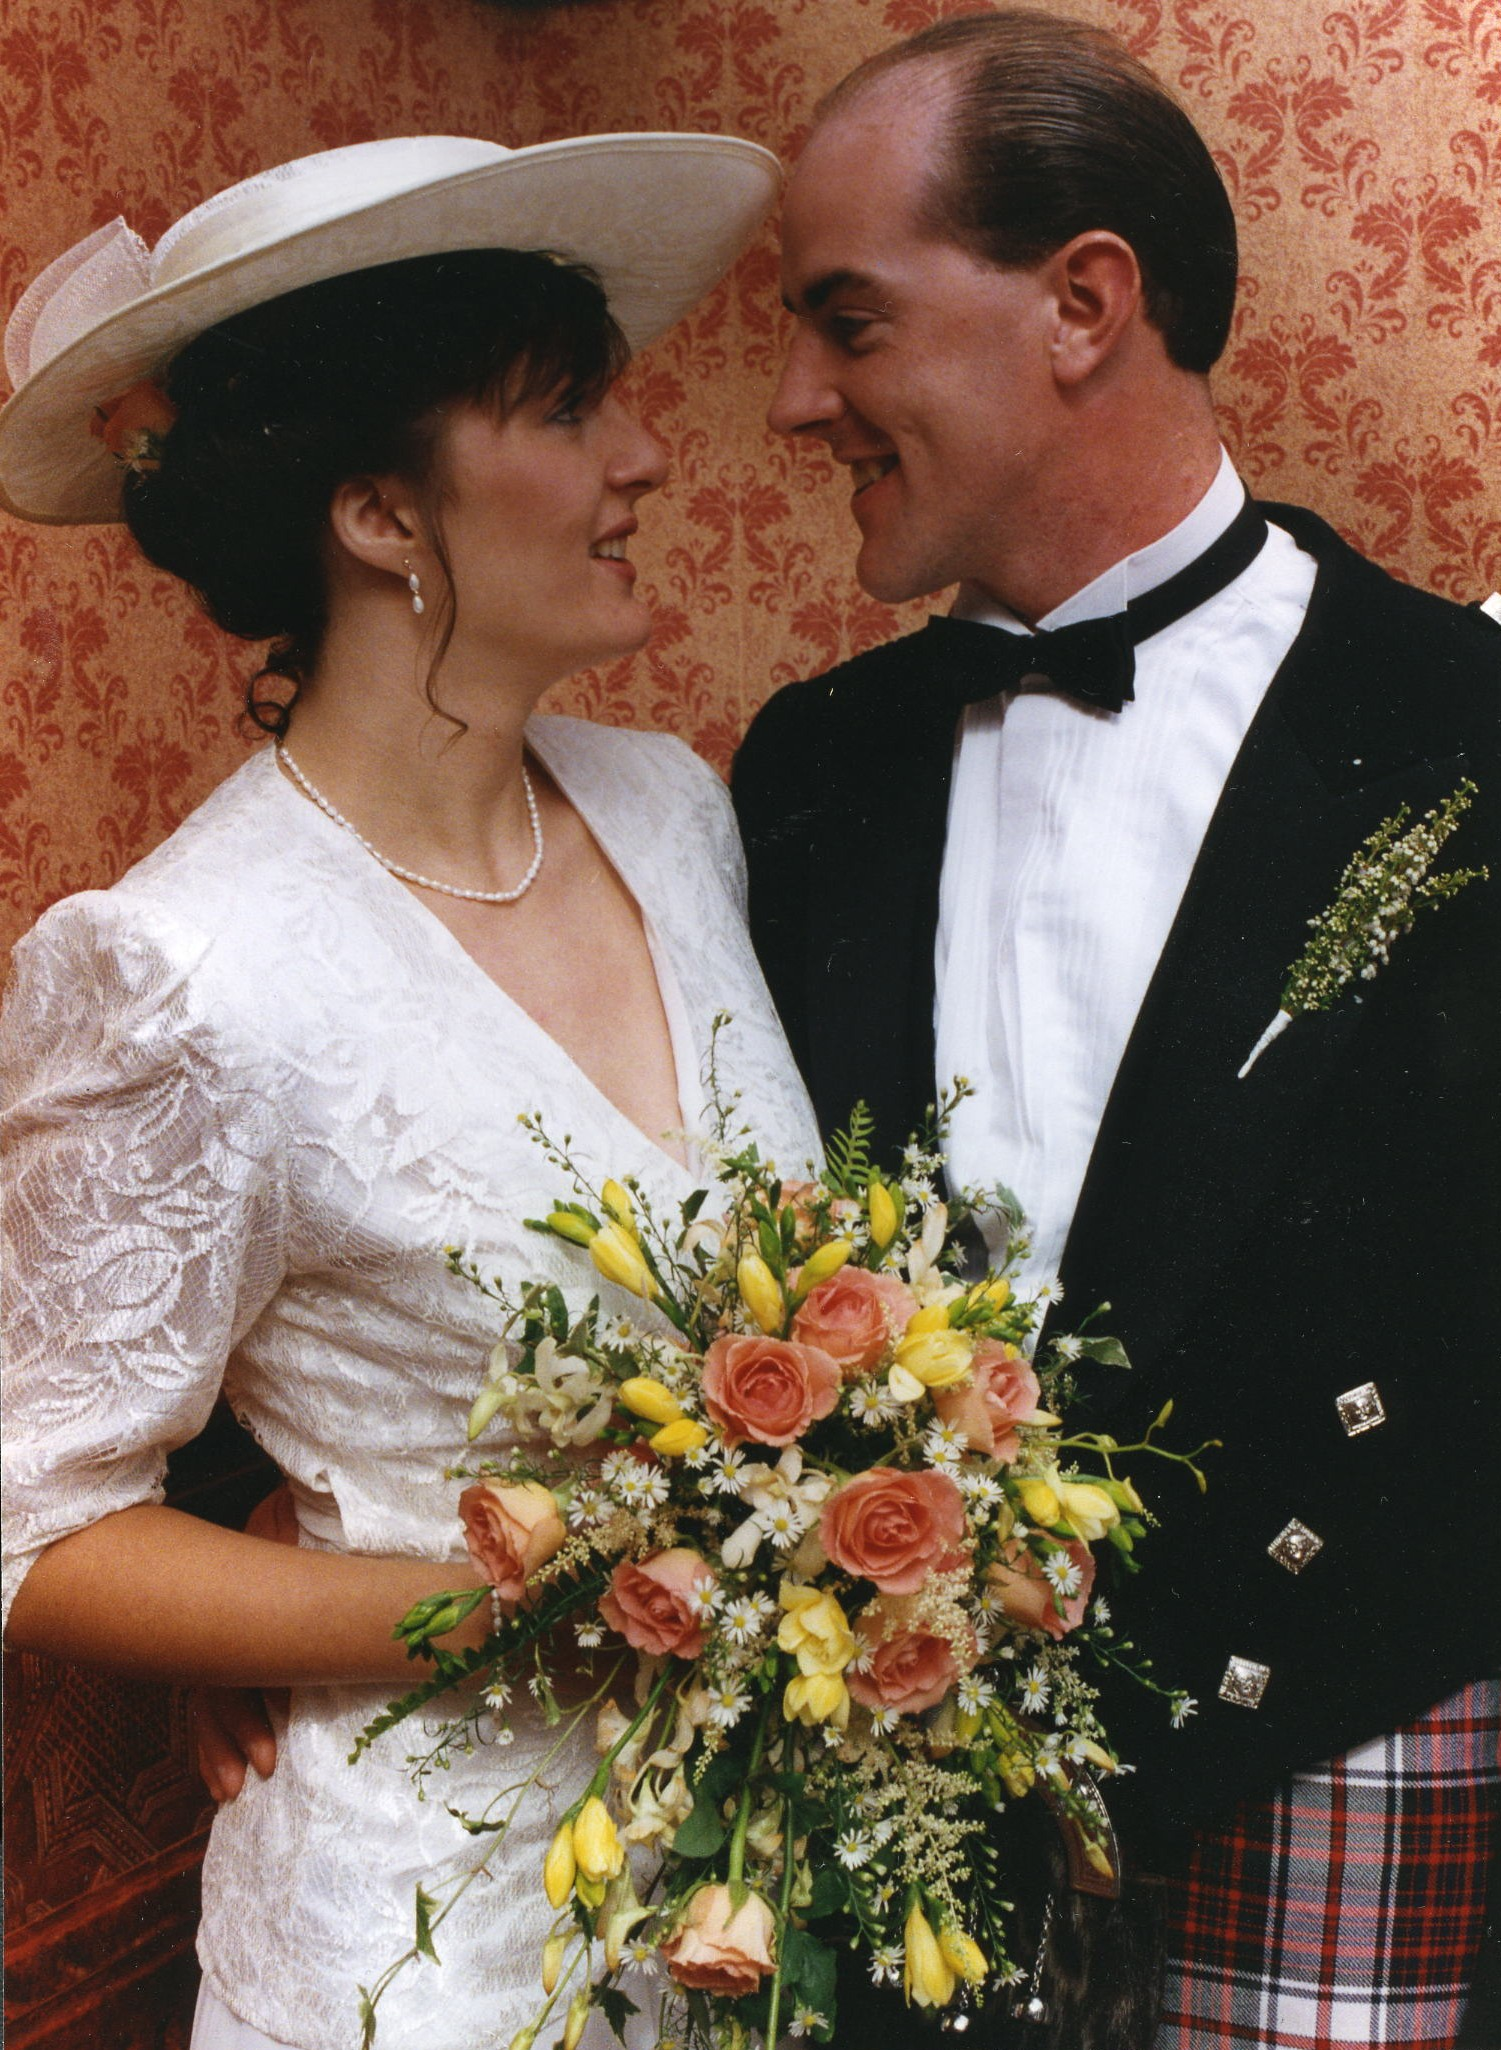 Raymond Anderson & Veronica Coutts's Wedding